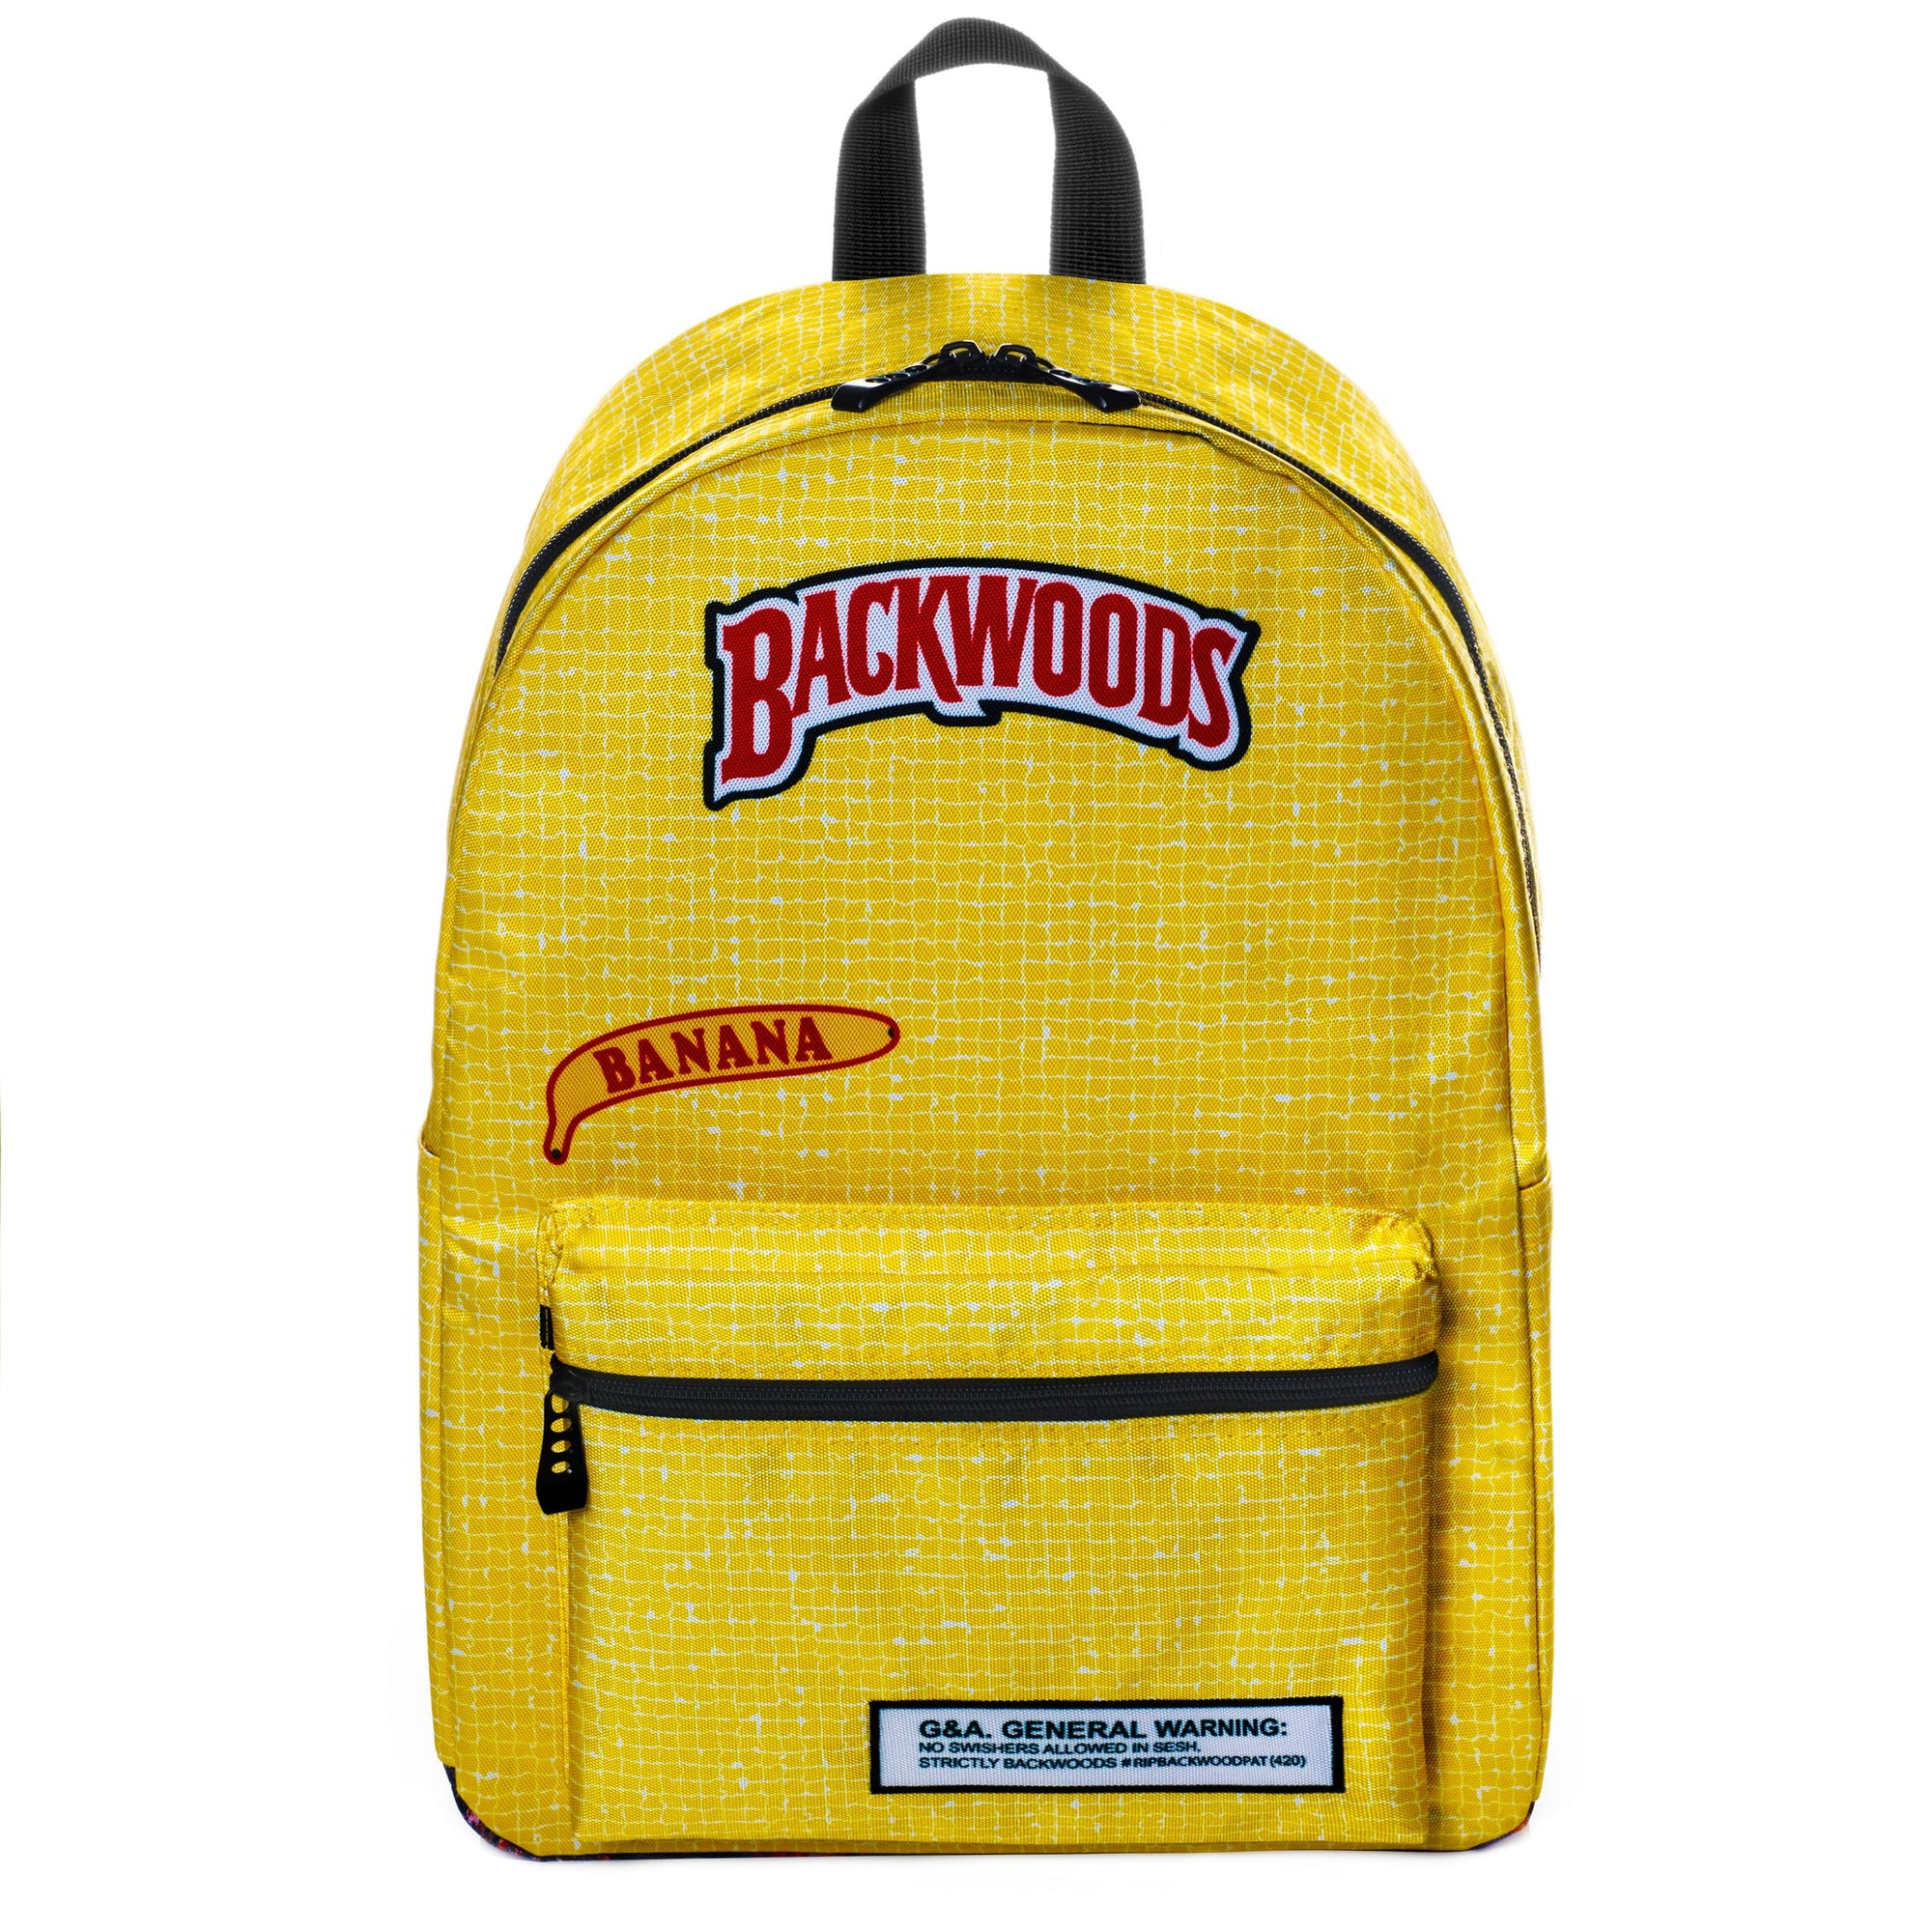 Banana Backwoods Backpack